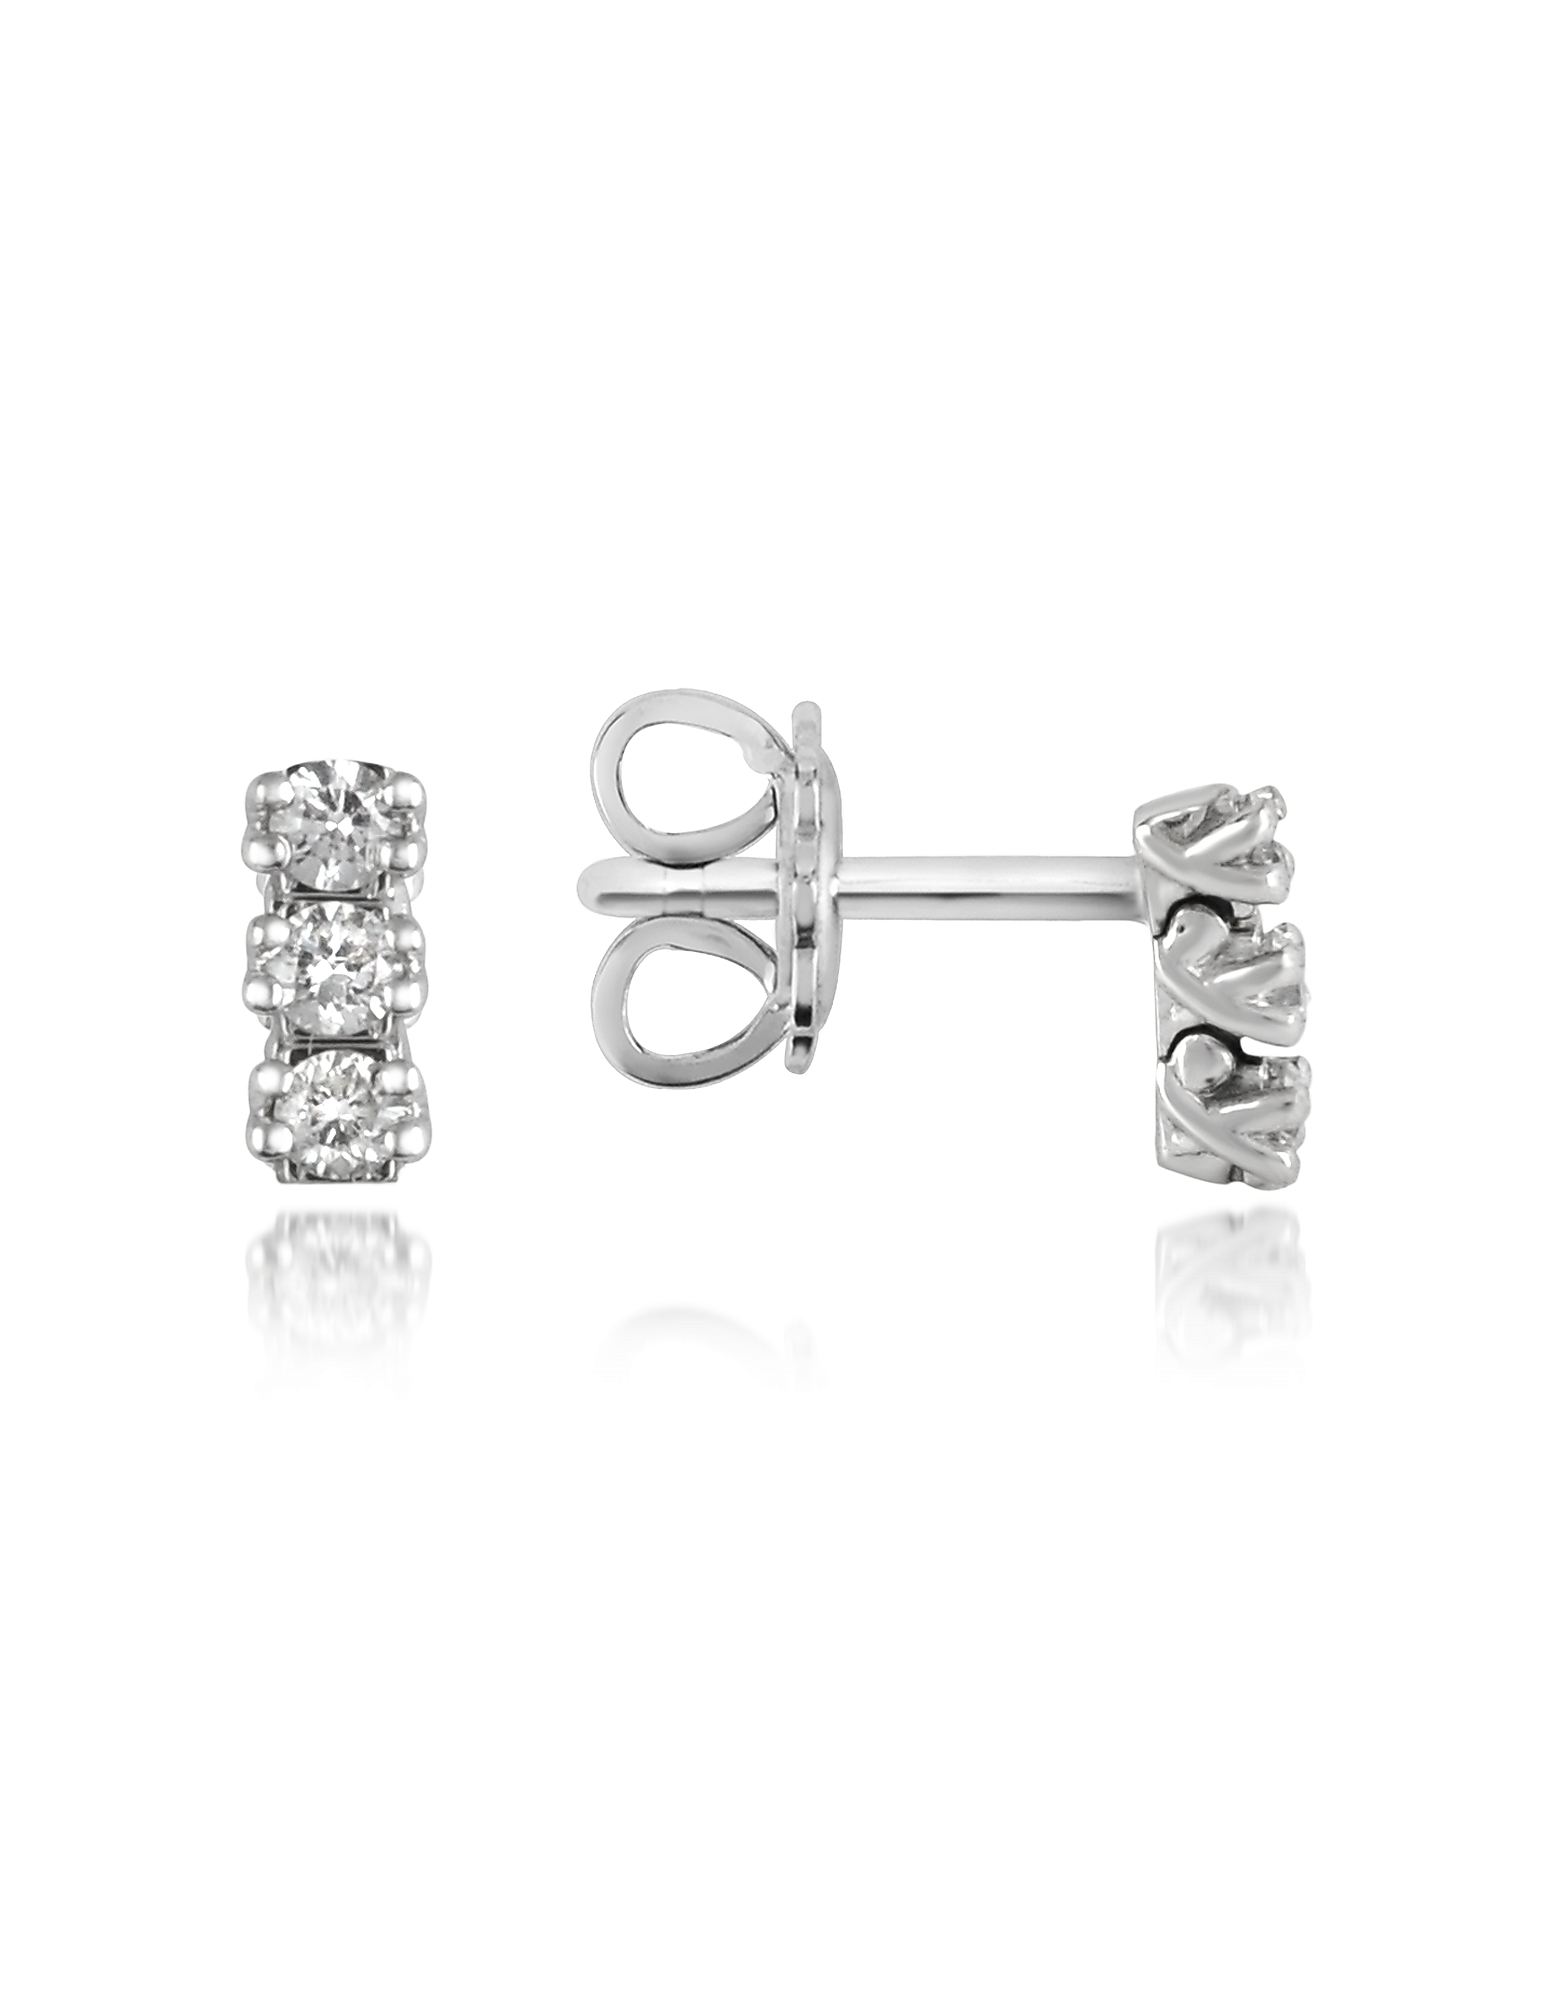 Forzieri Earrings, 0.22 ctw Three-Stone Drop Diamond 18K Gold Earrings